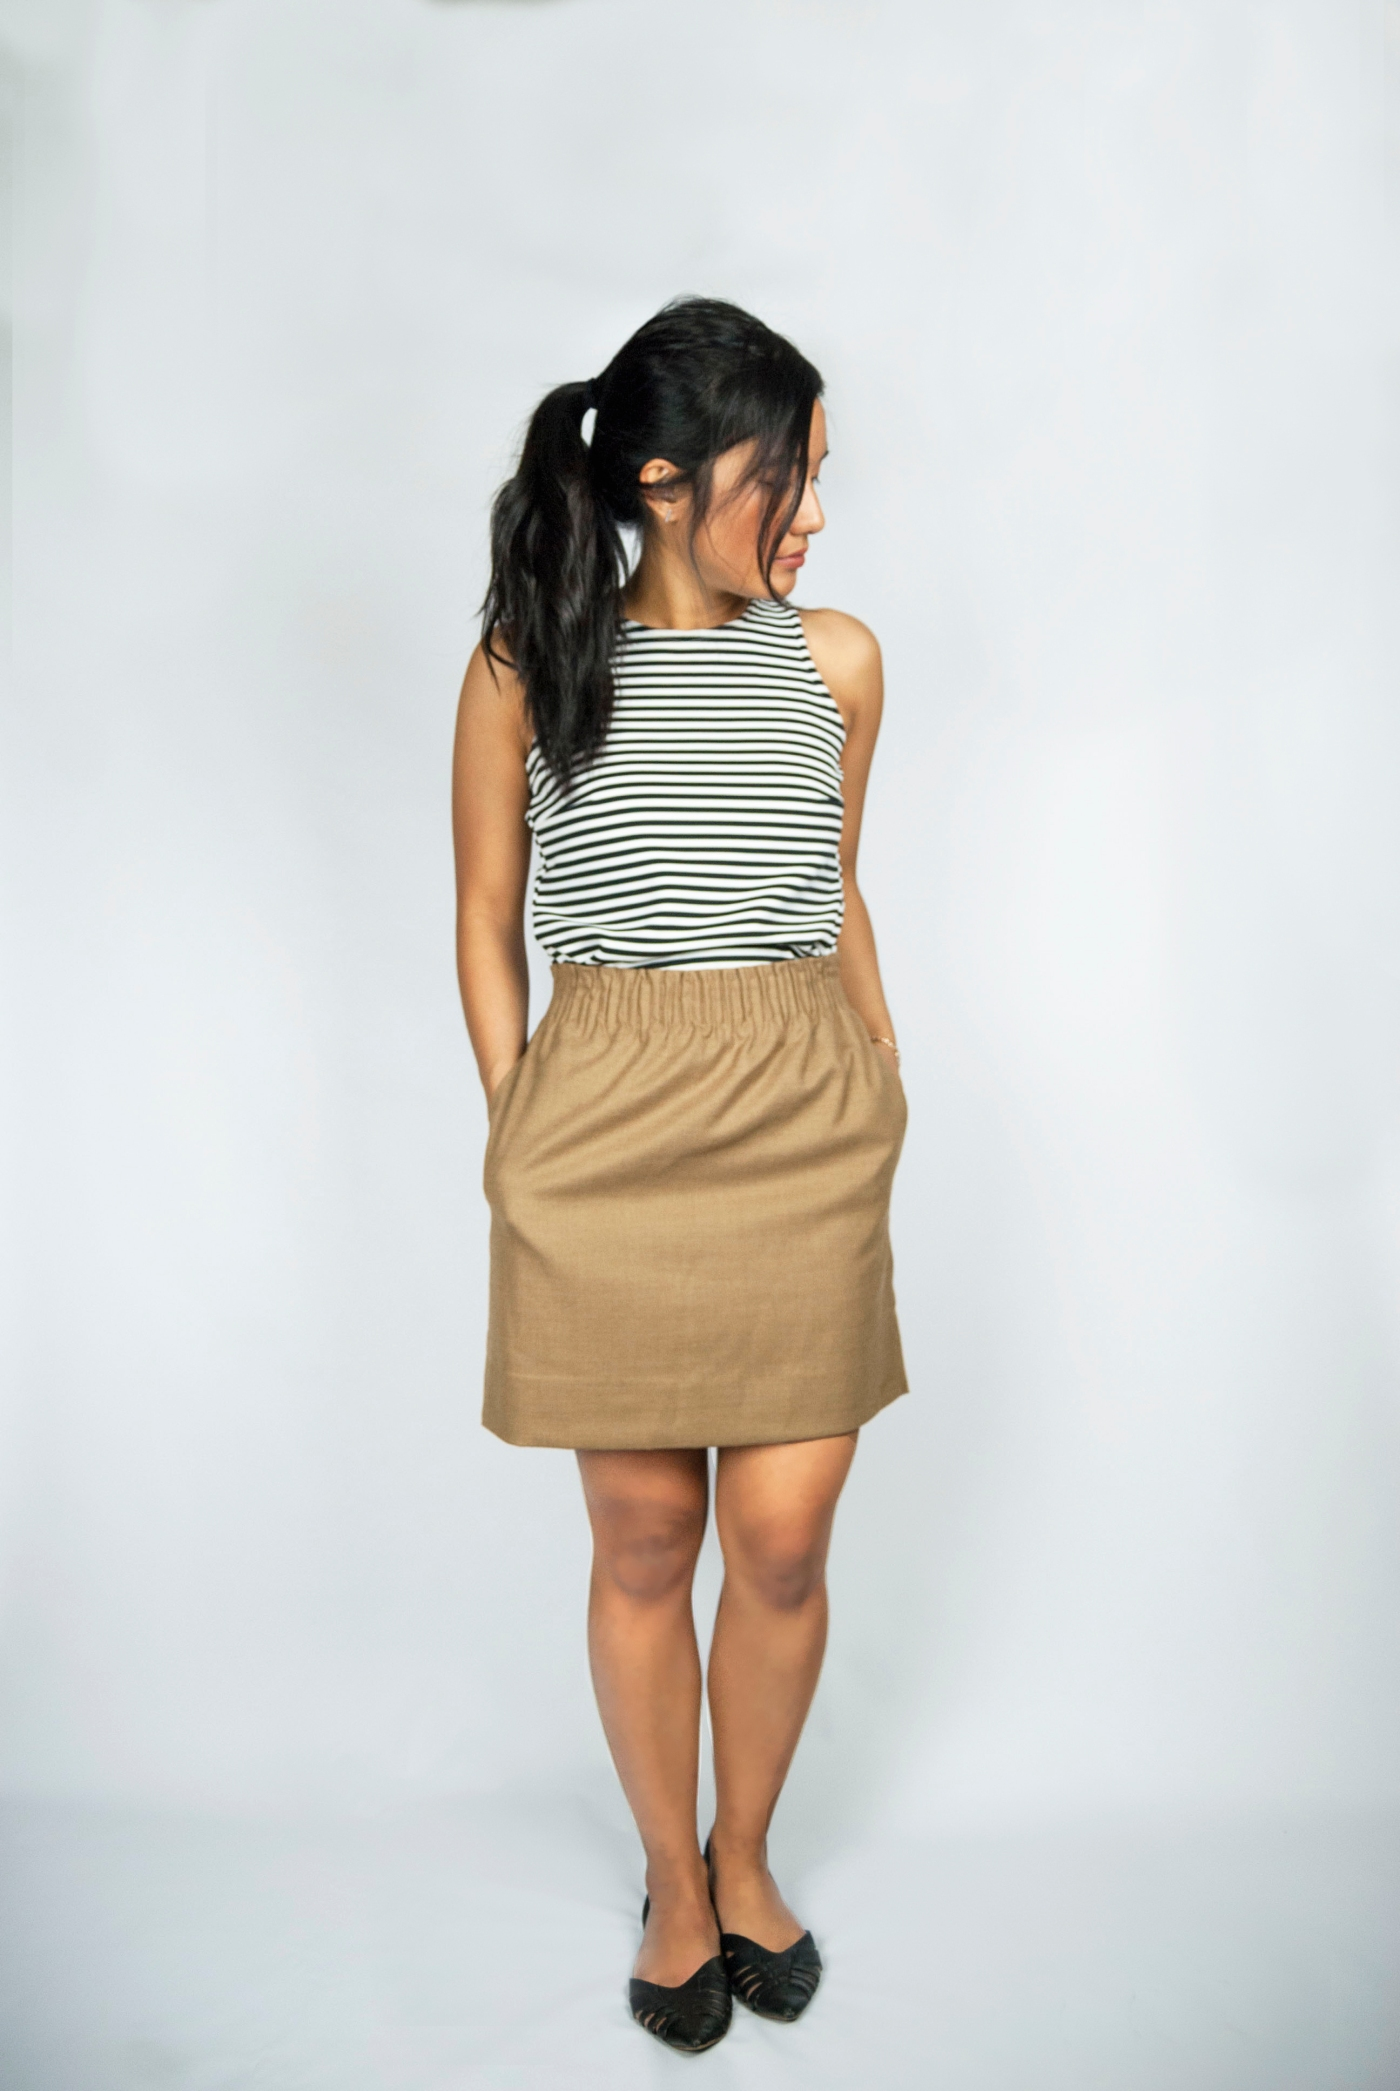 petite-stylebook-striped-top_20 edit